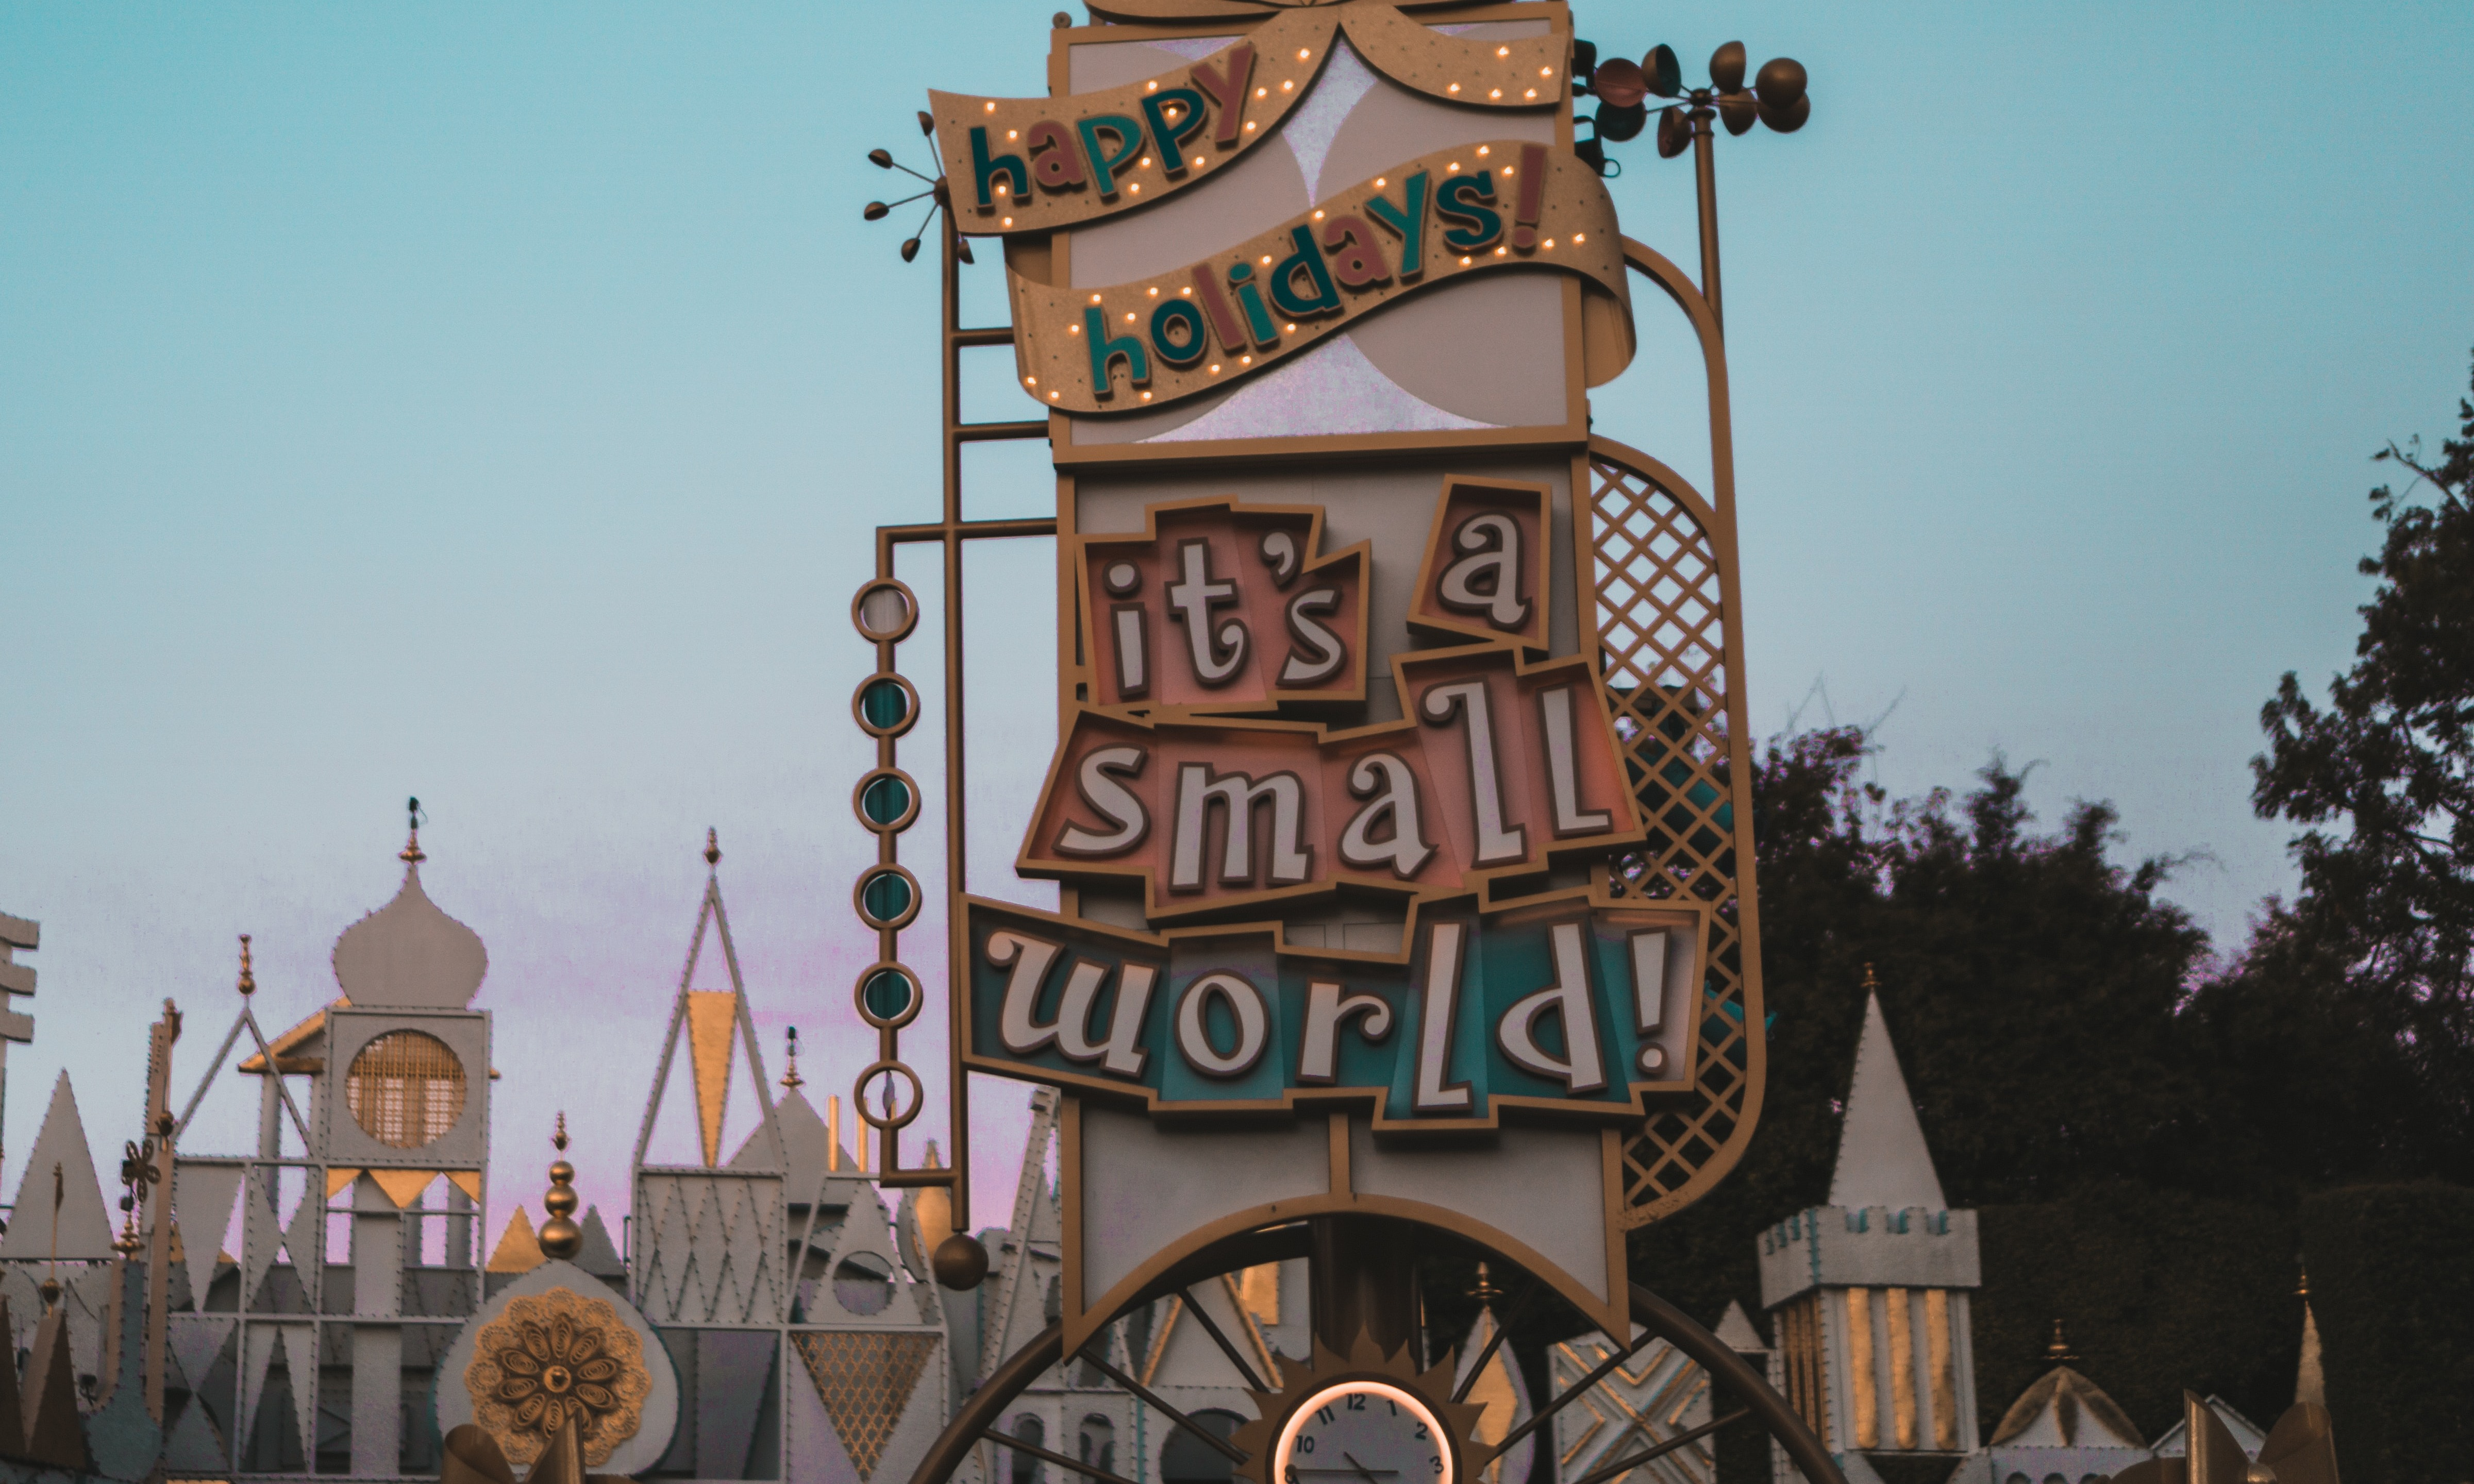 It's a small world | story.one